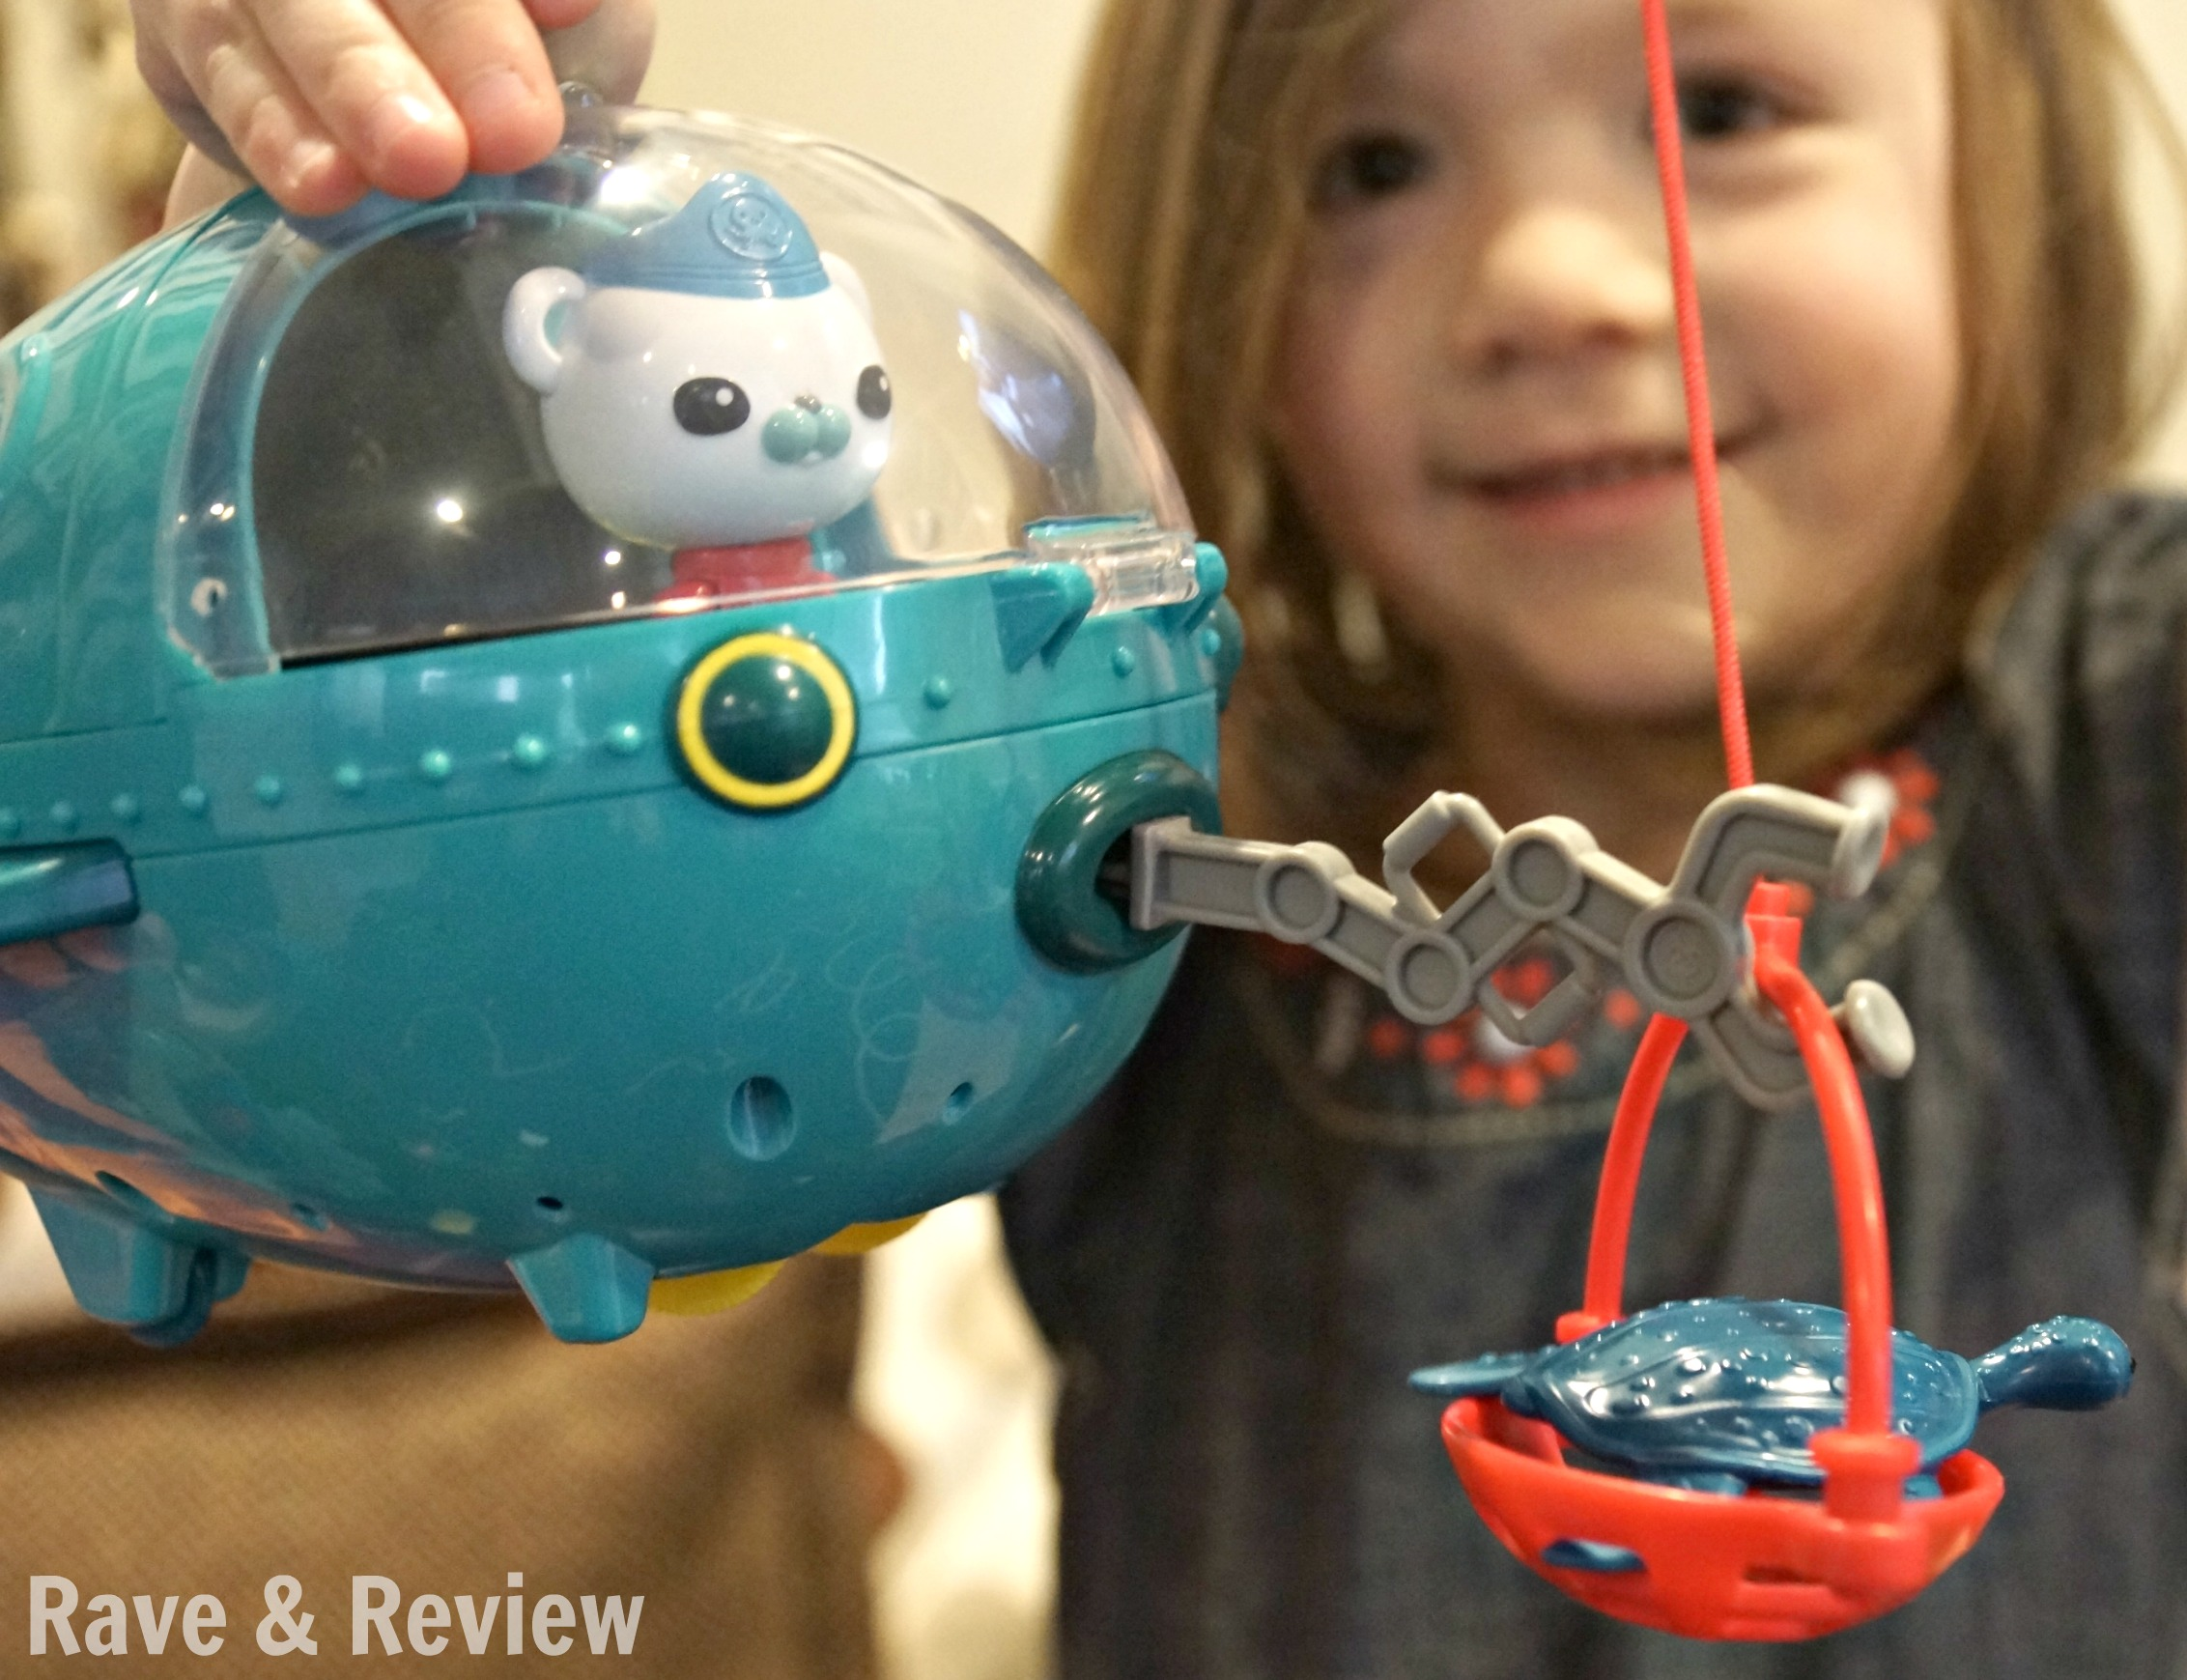 Best Octonauts Toys Kids : Sound the octo alert octonauts toys are here rave review